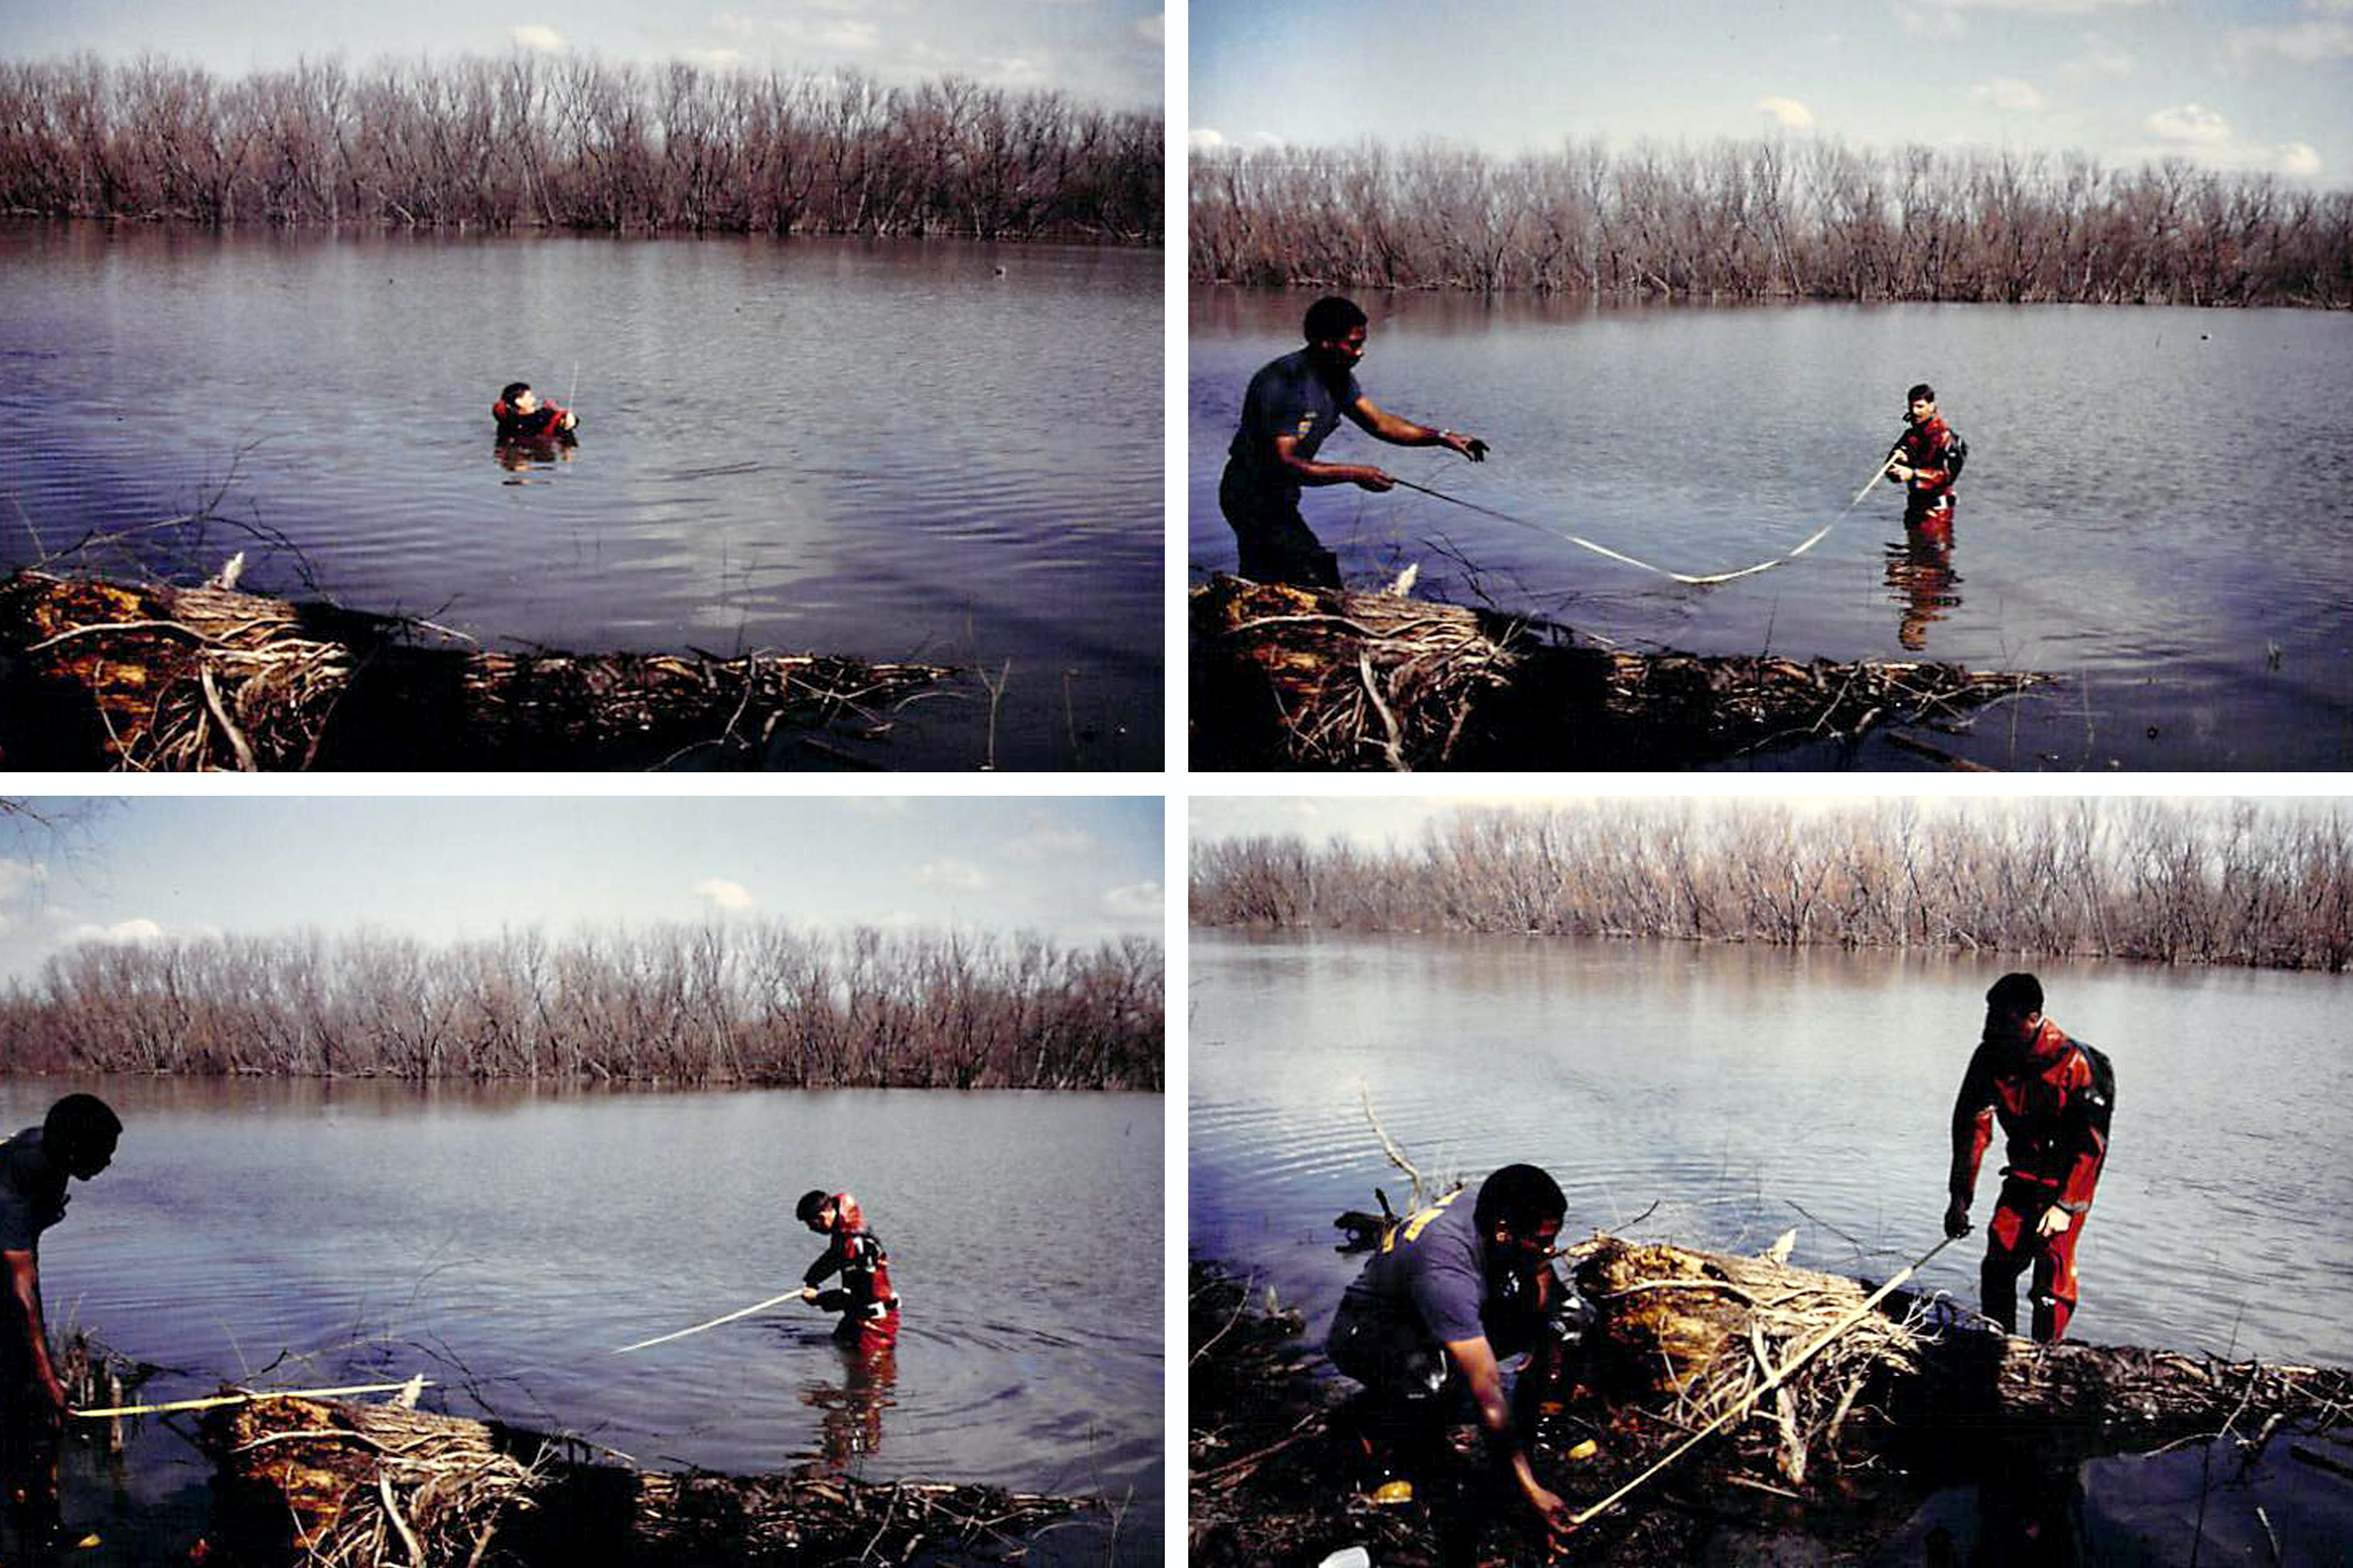 A Fishing Outing, a Child Drowned  It Was a Tragic Accident